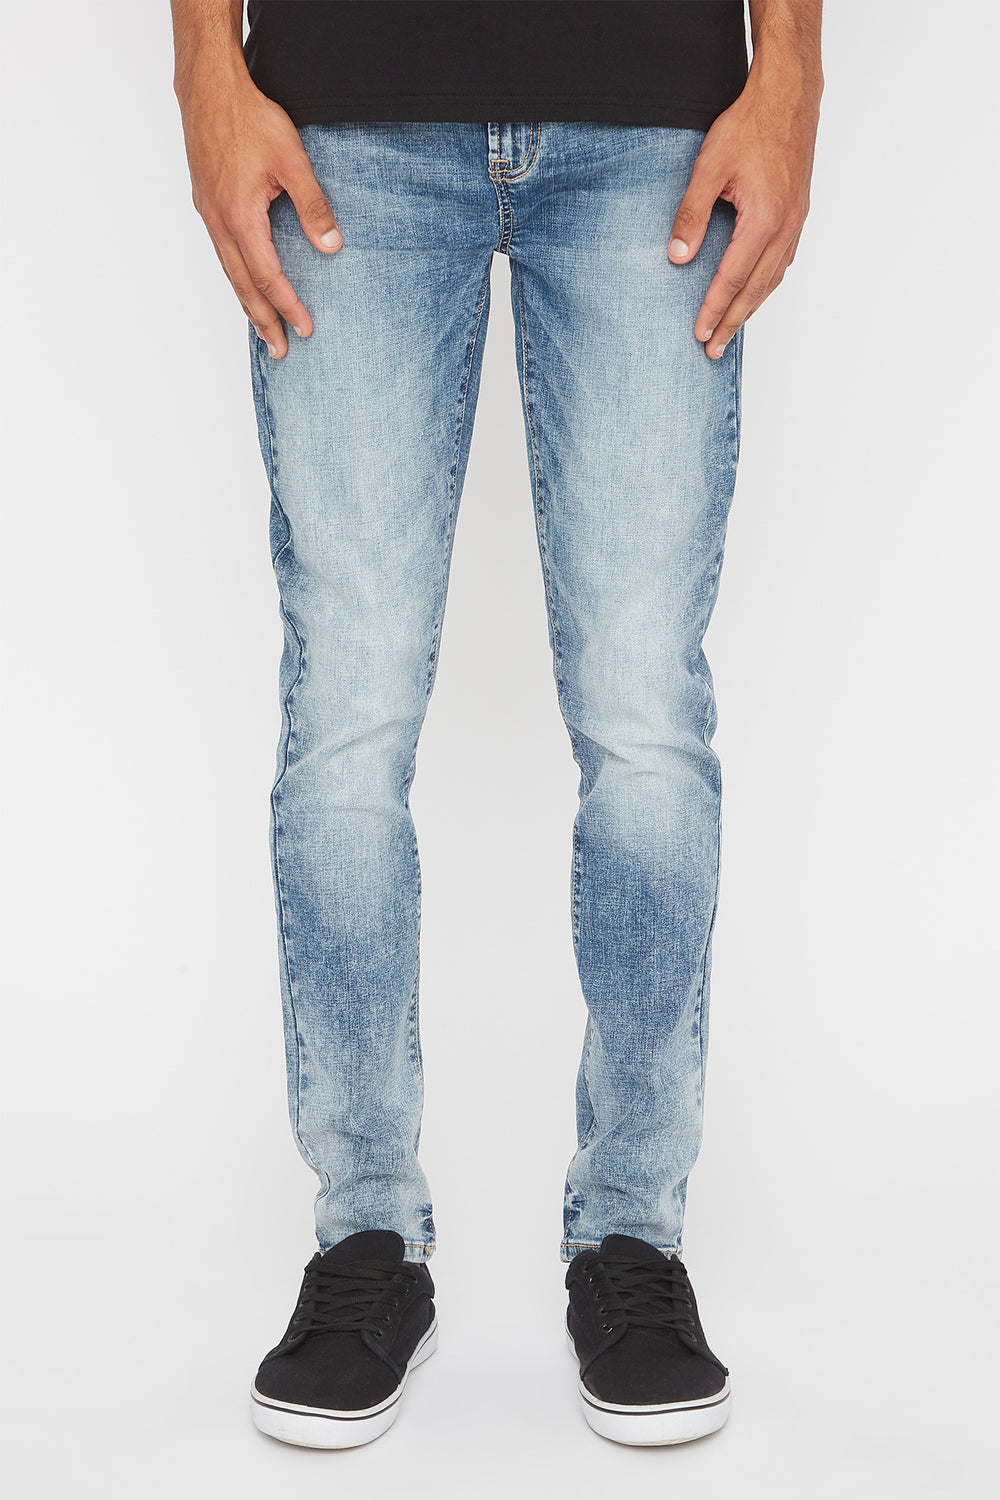 Jean Filiforme Extensible Zoo York Homme Bleu pale